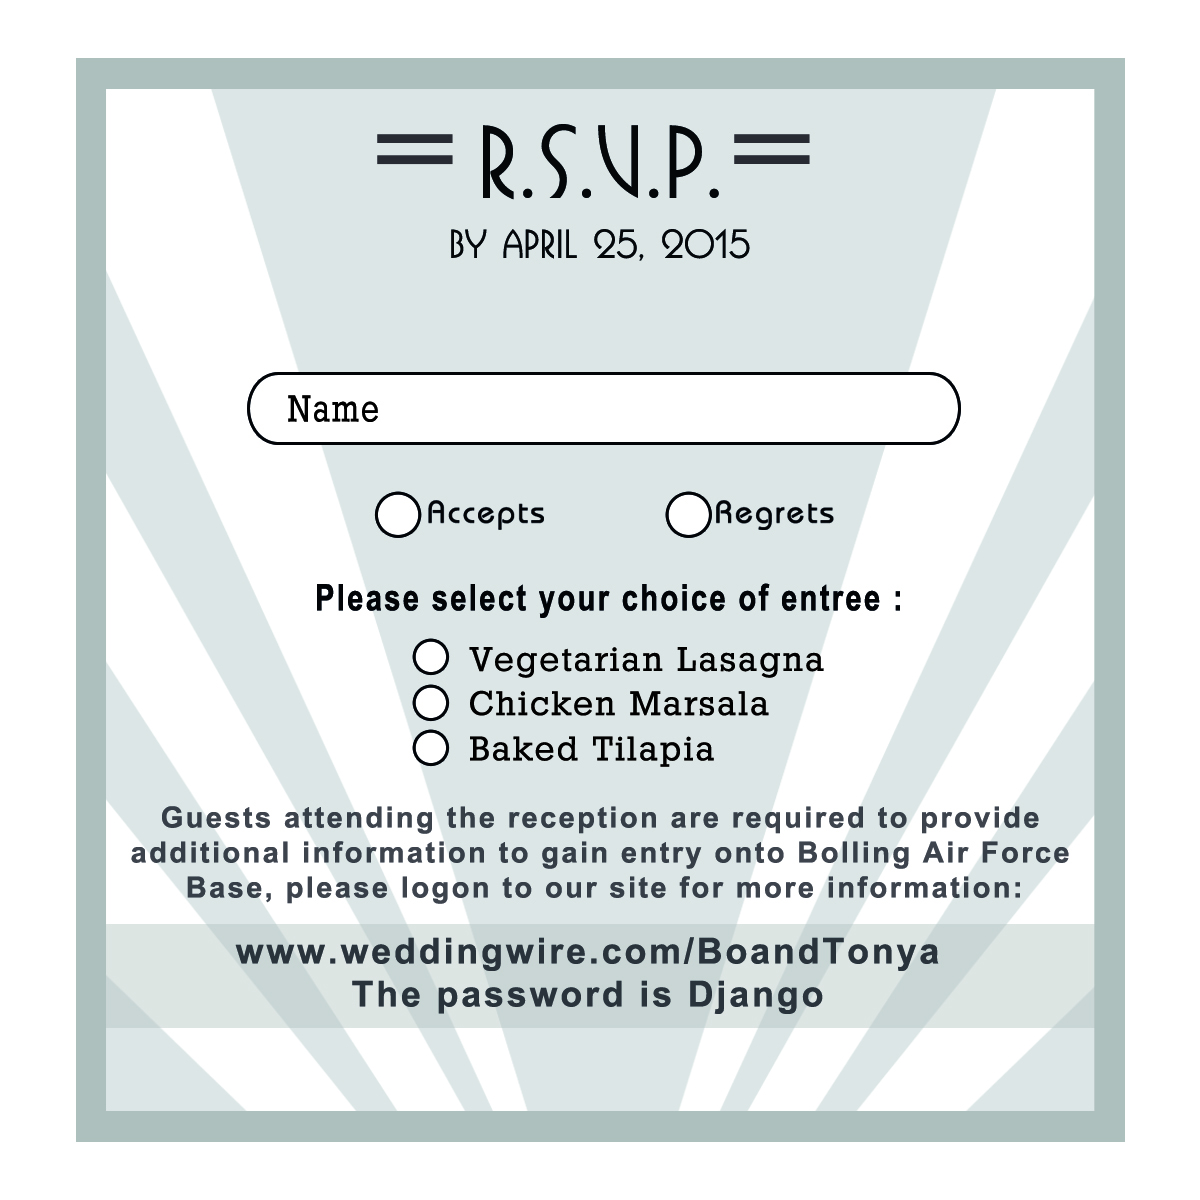 4x4 RSVP without Security